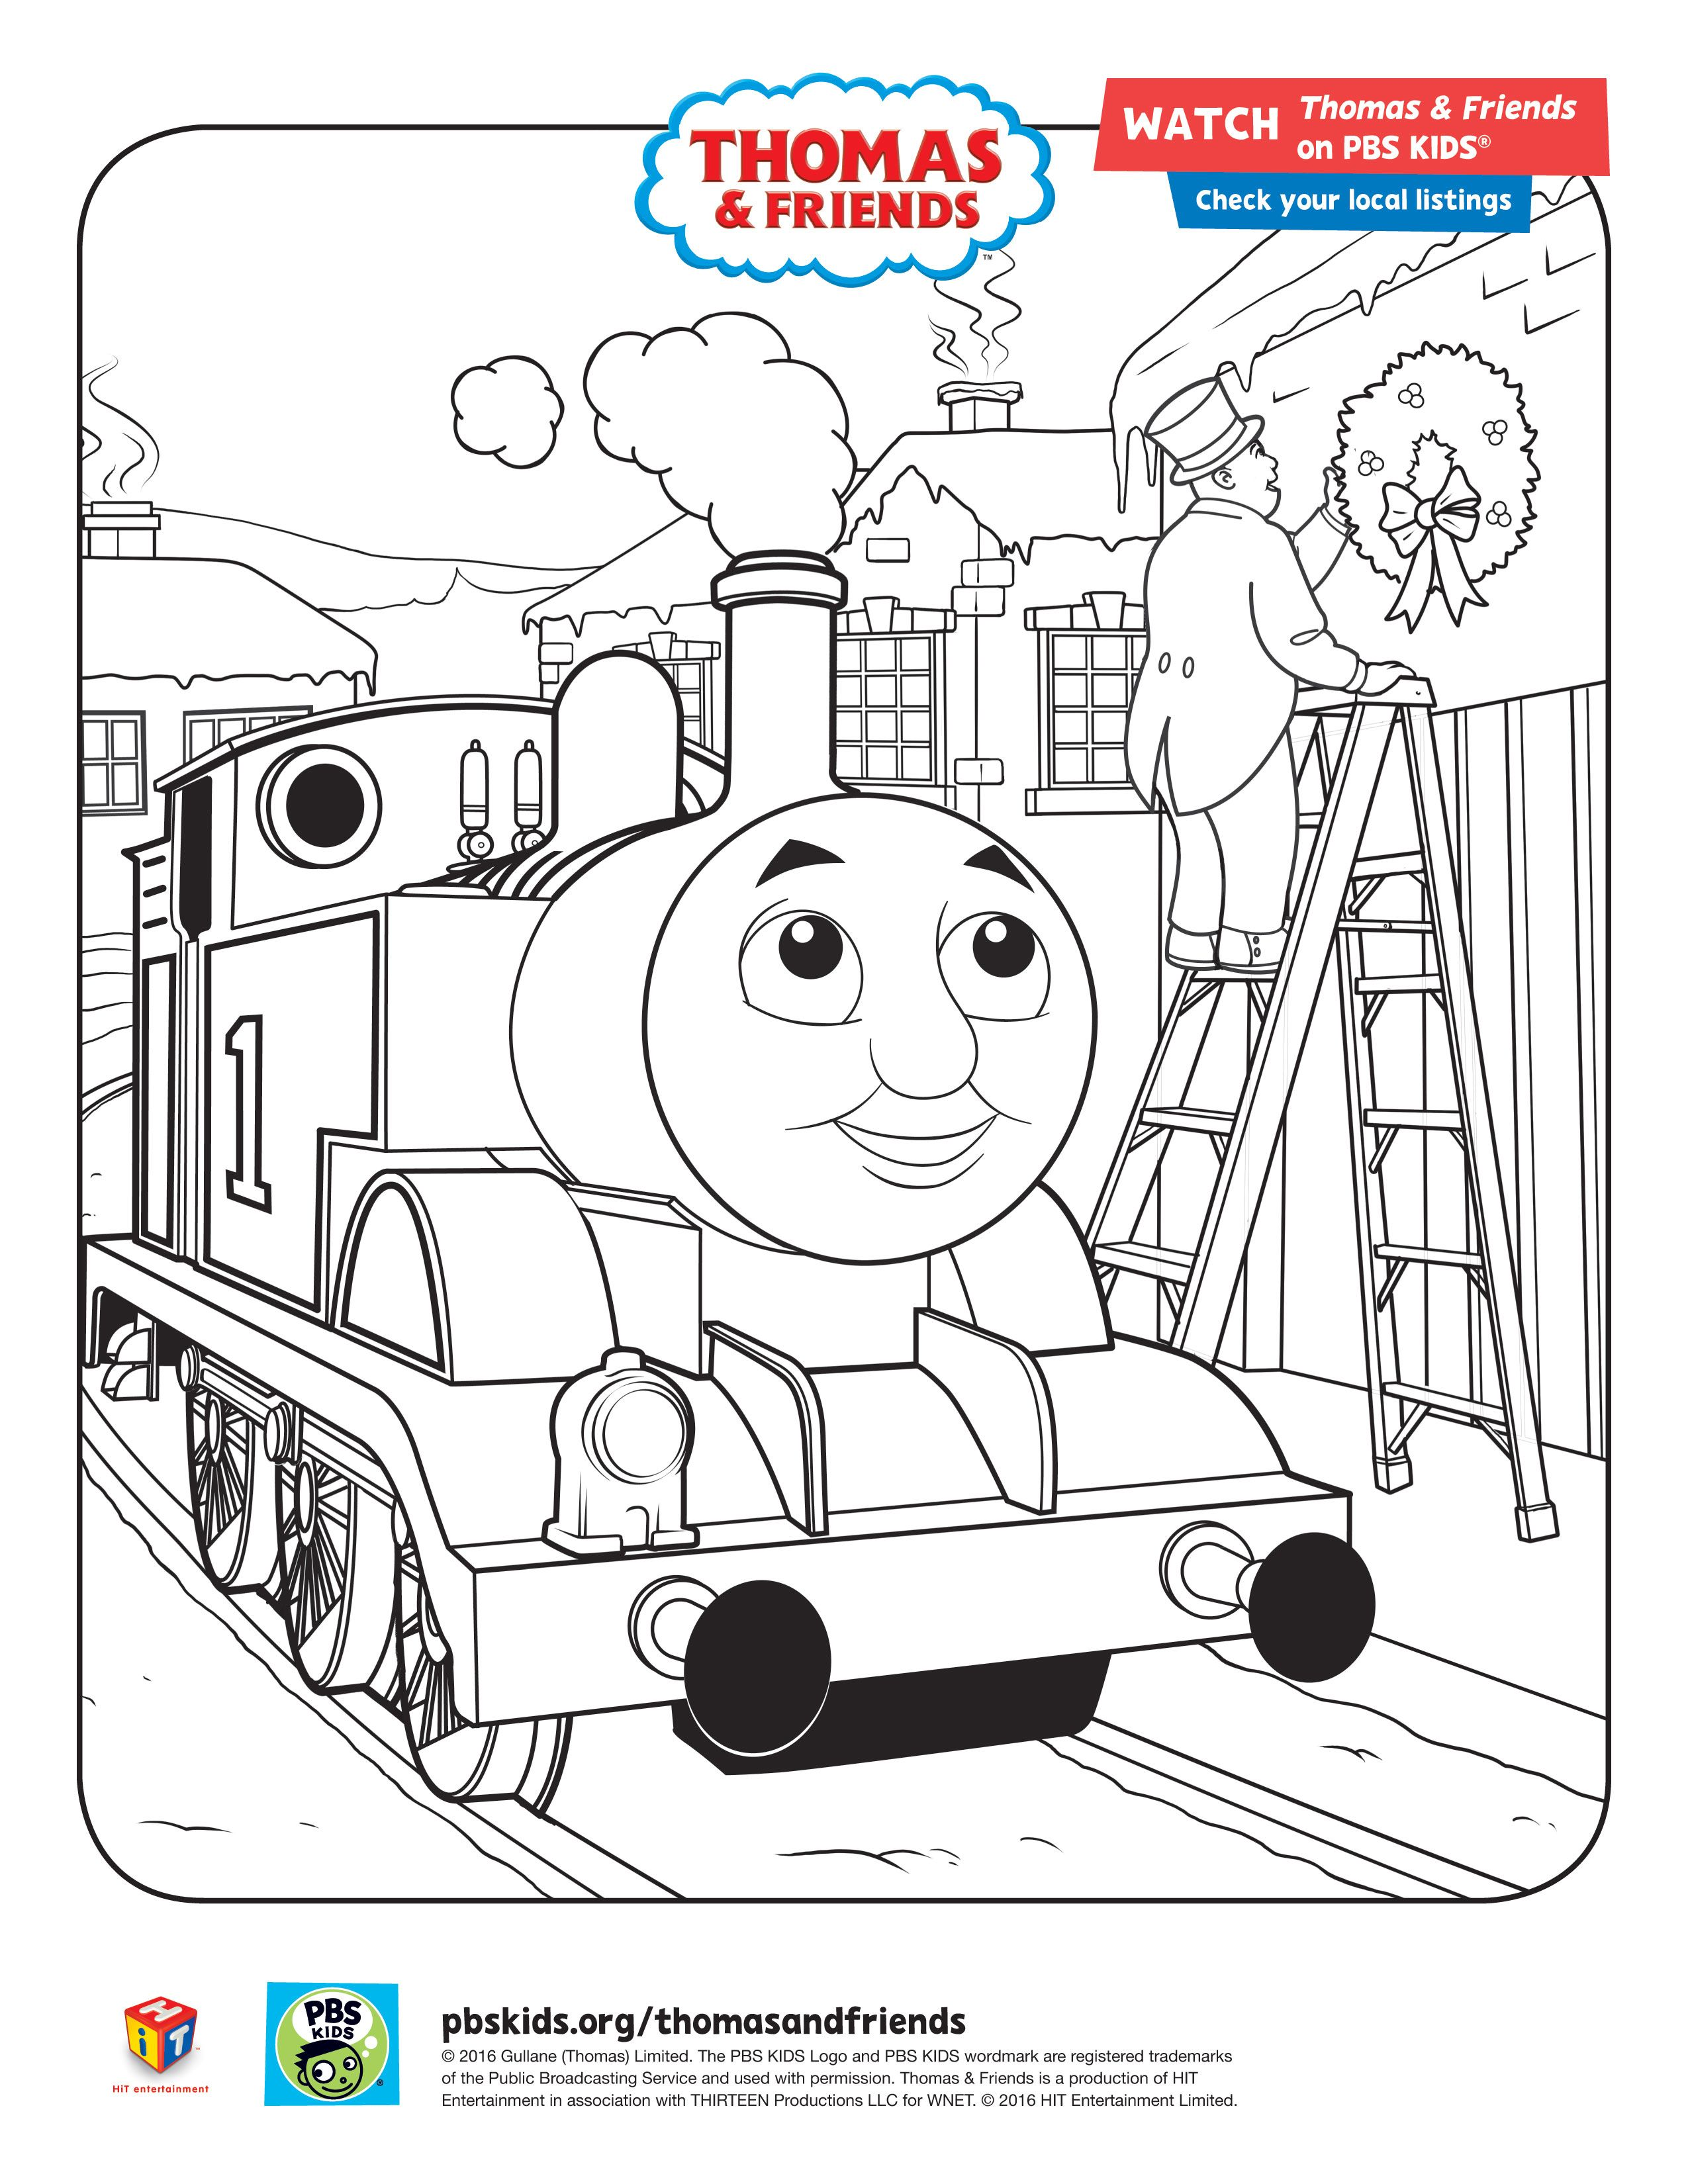 pbskids.org coloring pages Thomas & Friends holiday coloring sheet #ThomasandFriends #PBSKids  pbskids.org coloring pages